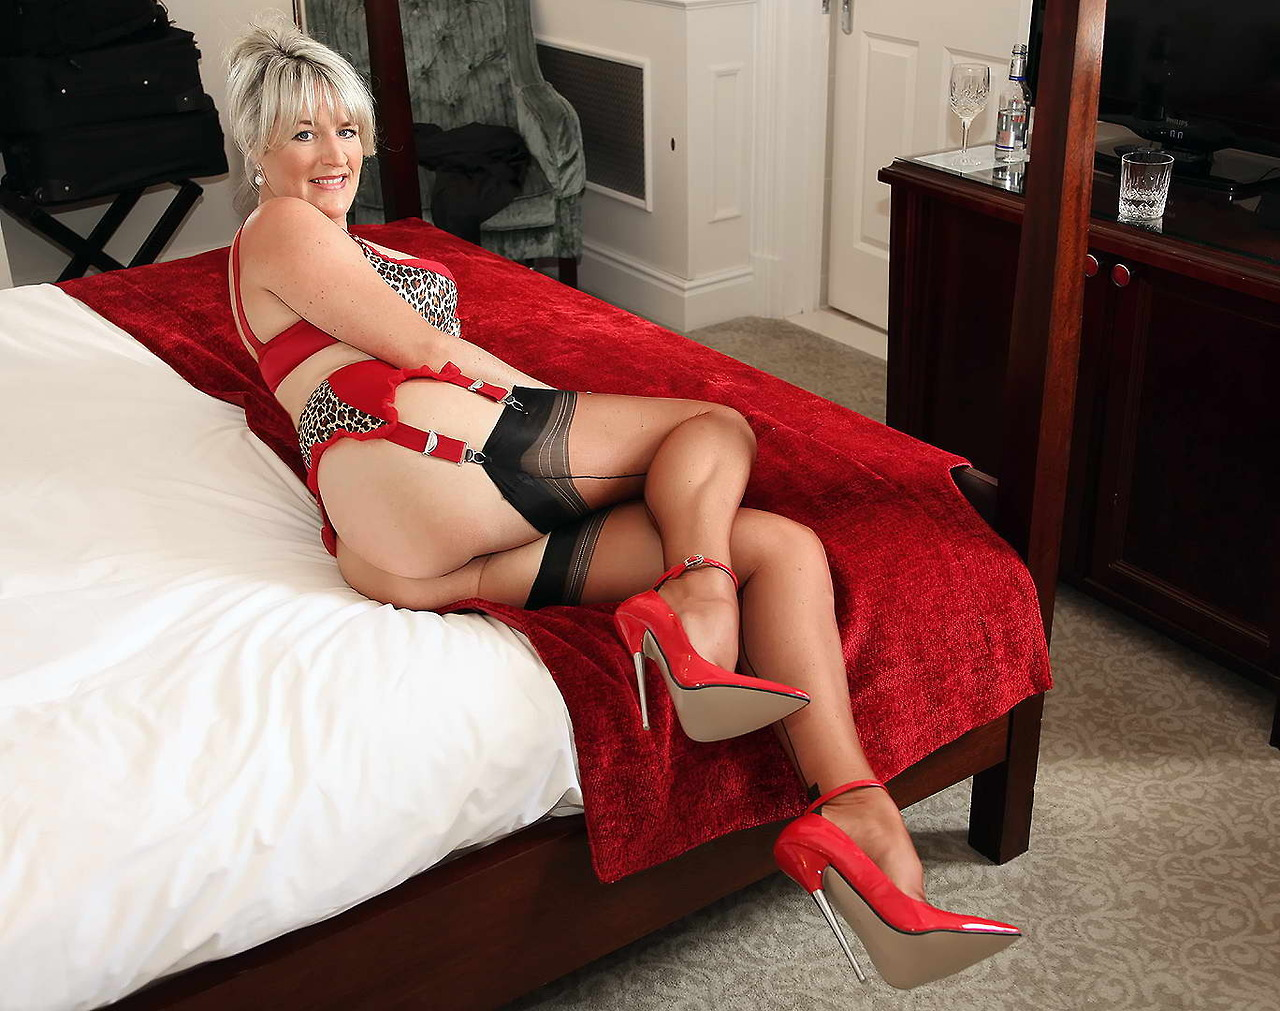 With Red high heels and stockings porn images for